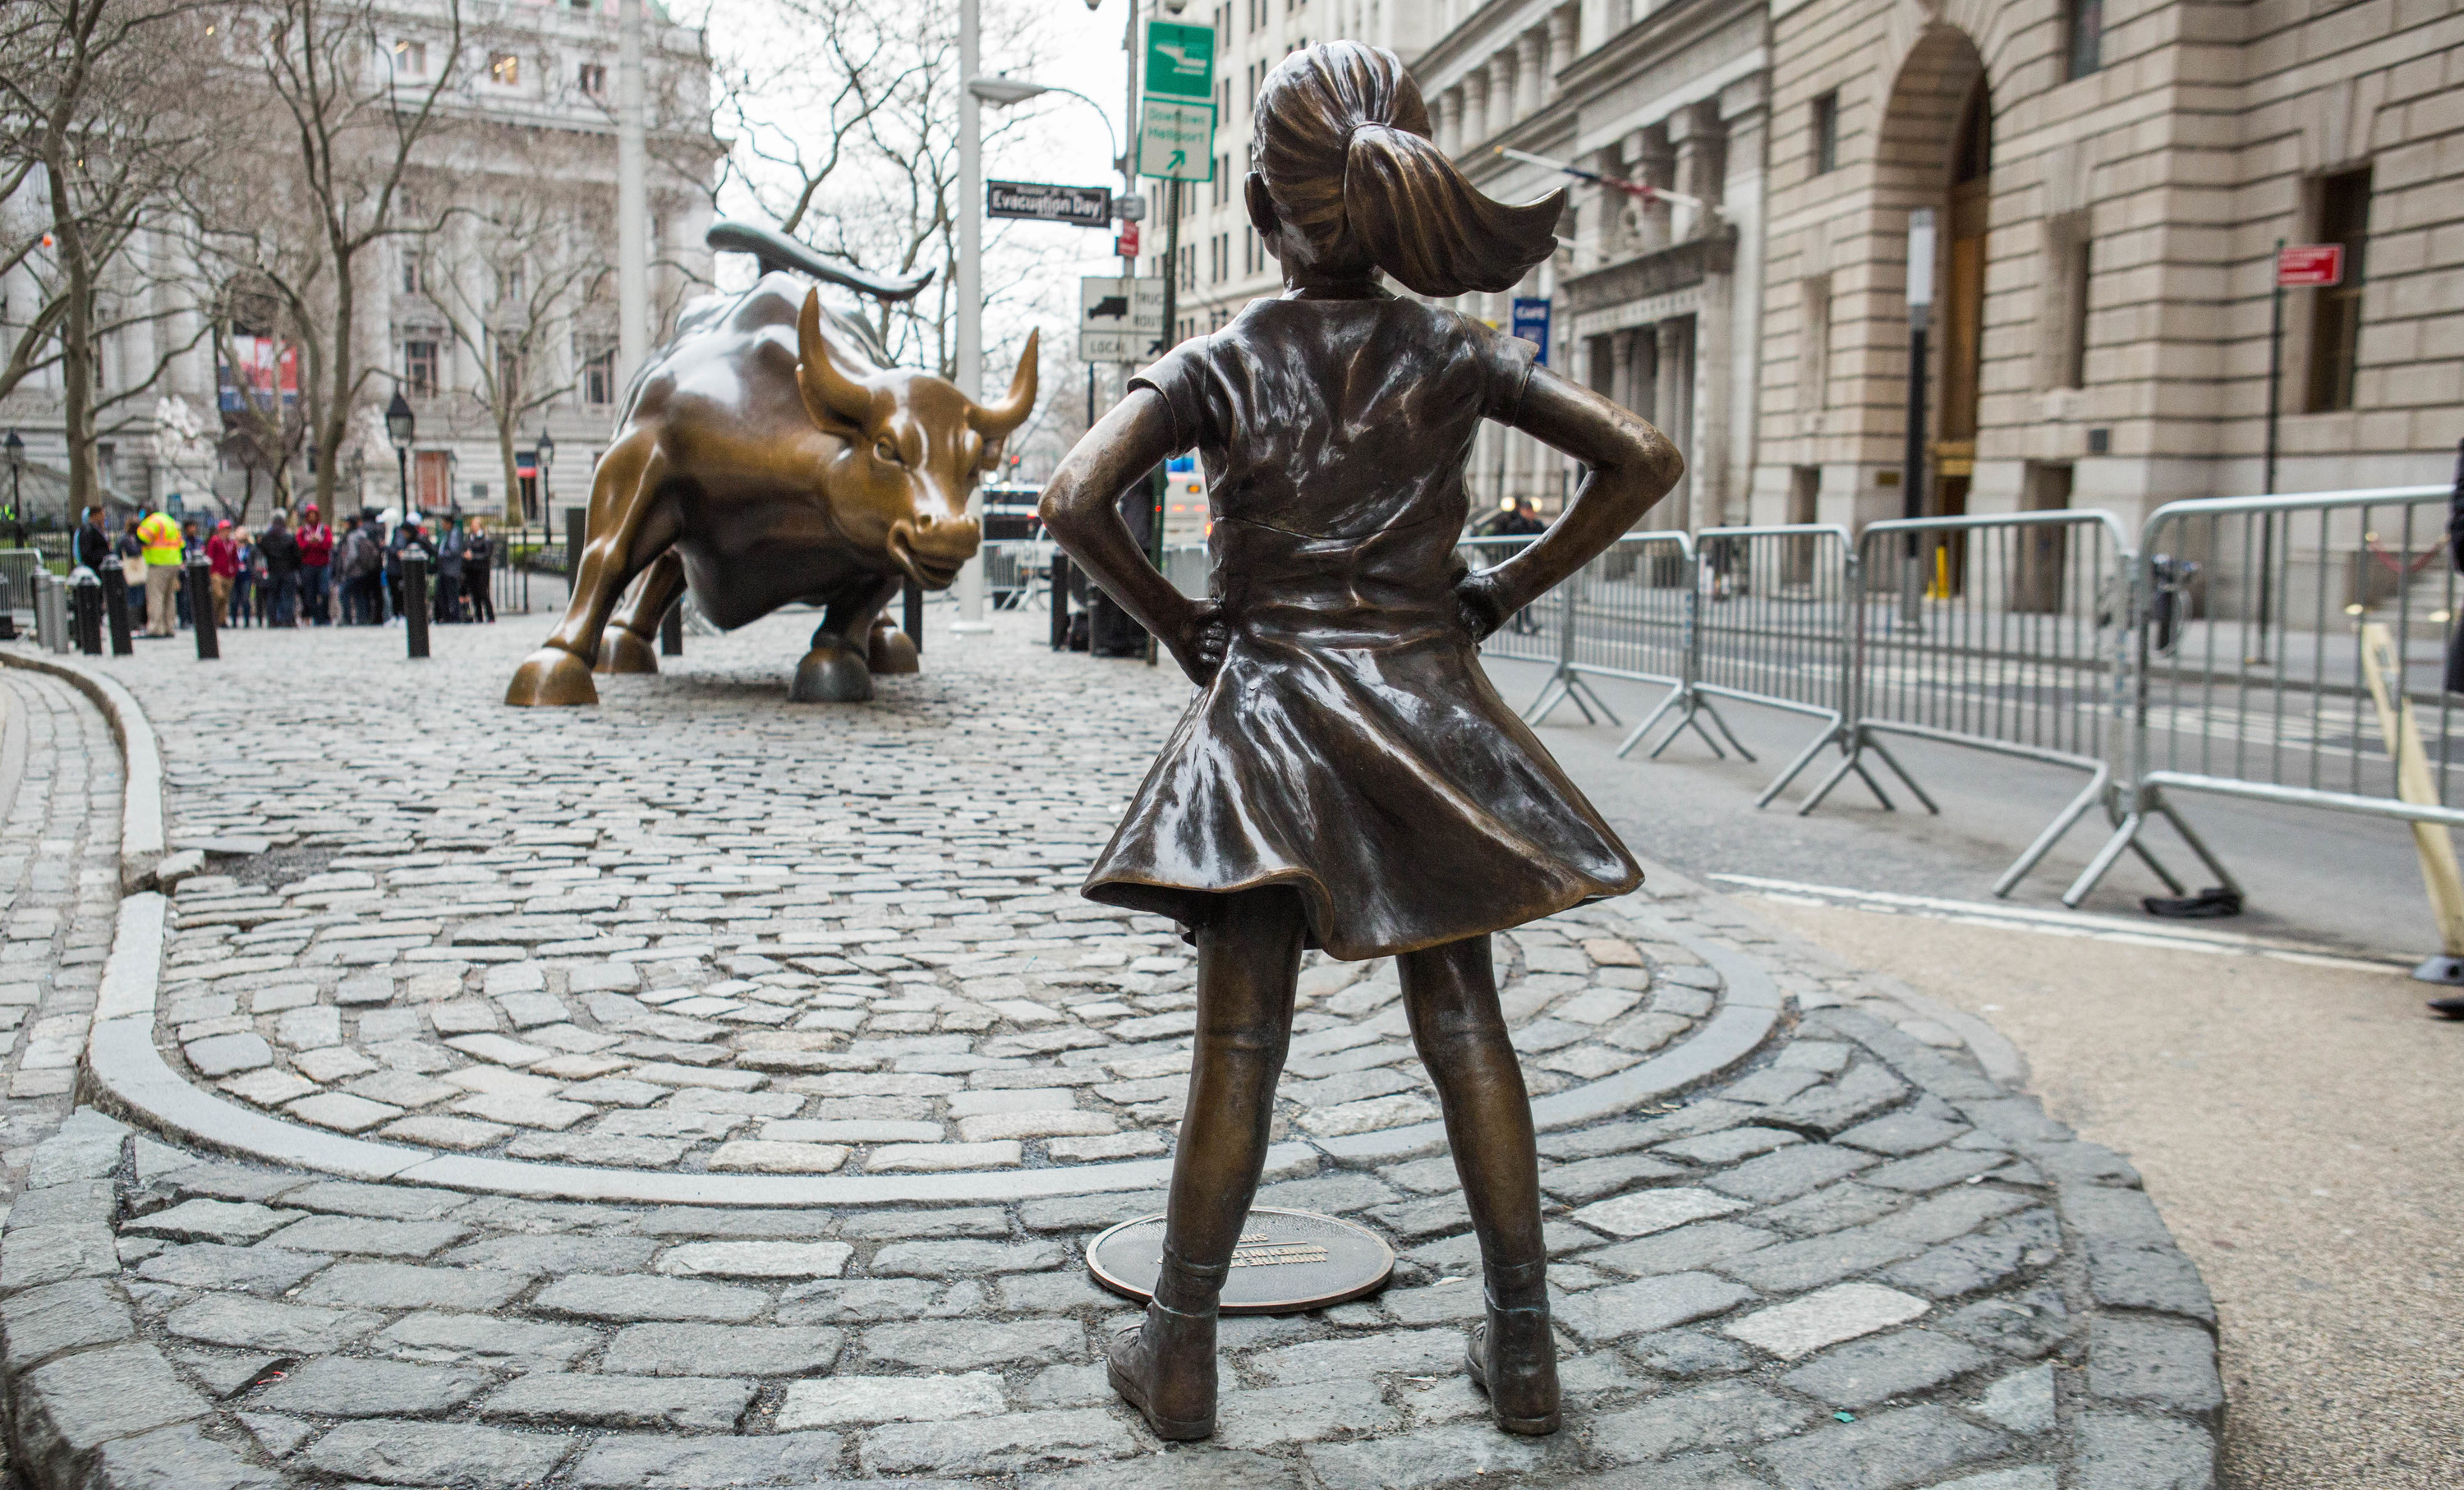 Fearless Girl statue has been moved from its spot opposite the Wall Street Bull